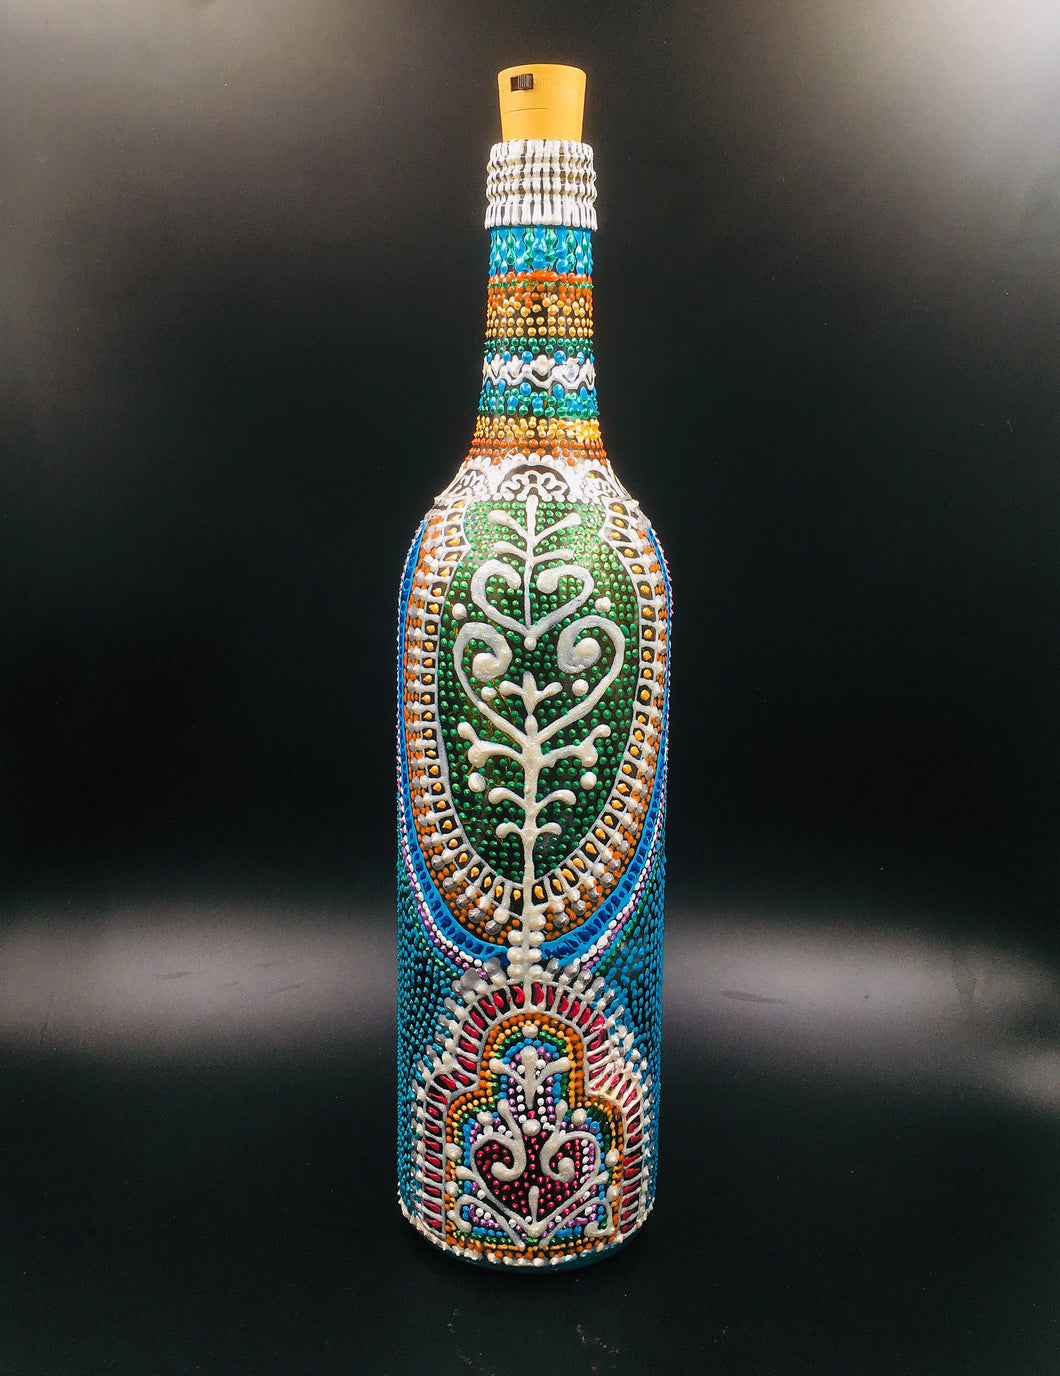 Silver Peacock Hand Painted Decorative Bottle Vase - Ankansala